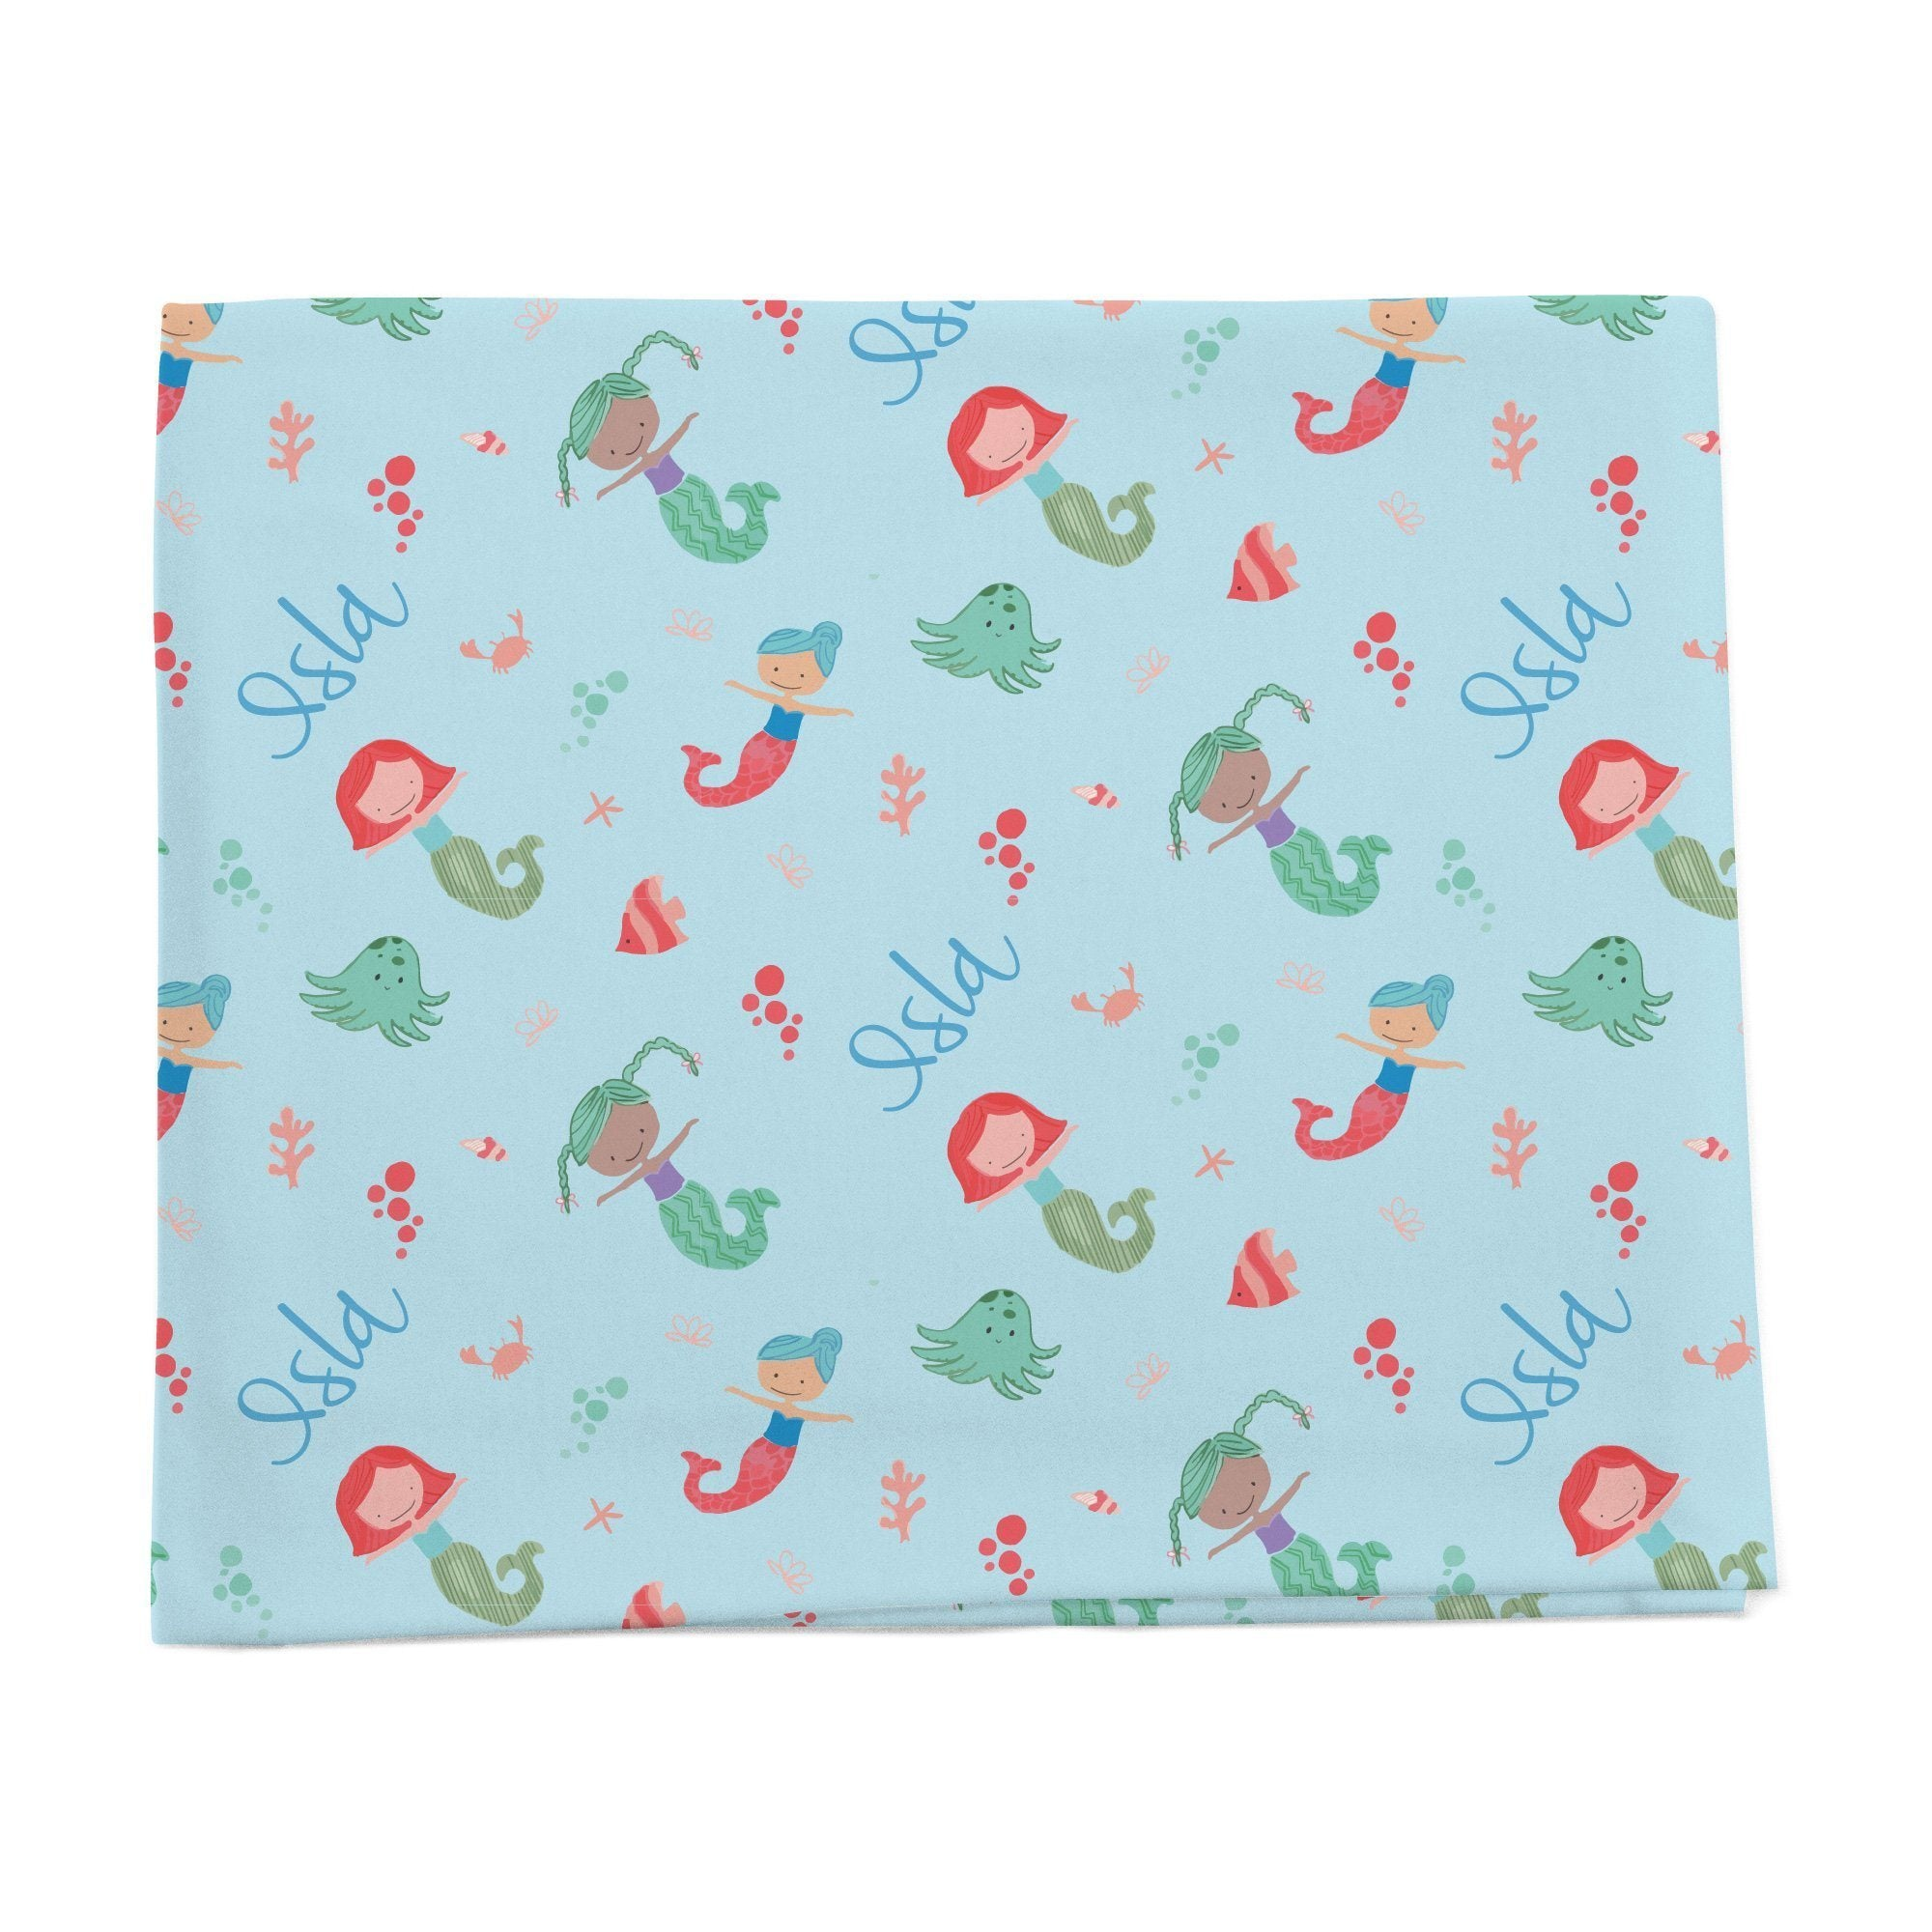 Ellie's Mermaids | Swaddle